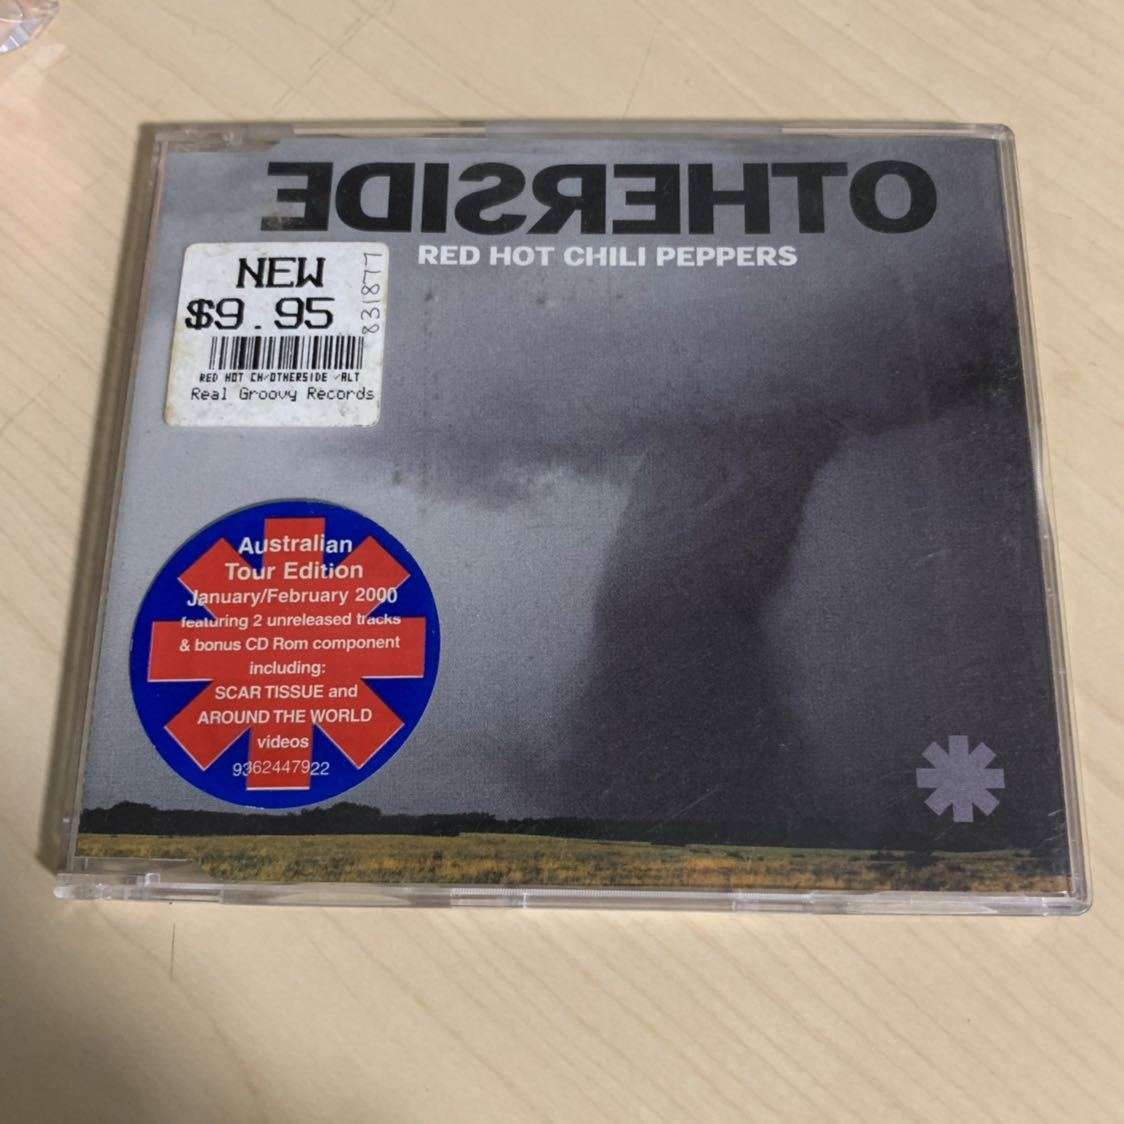 OTHERSIDE RED HOT CHILI PEPPERS レッチリ レッド ホット チリ ペッパーズ シングルCD アザーサイド 海外盤_画像1